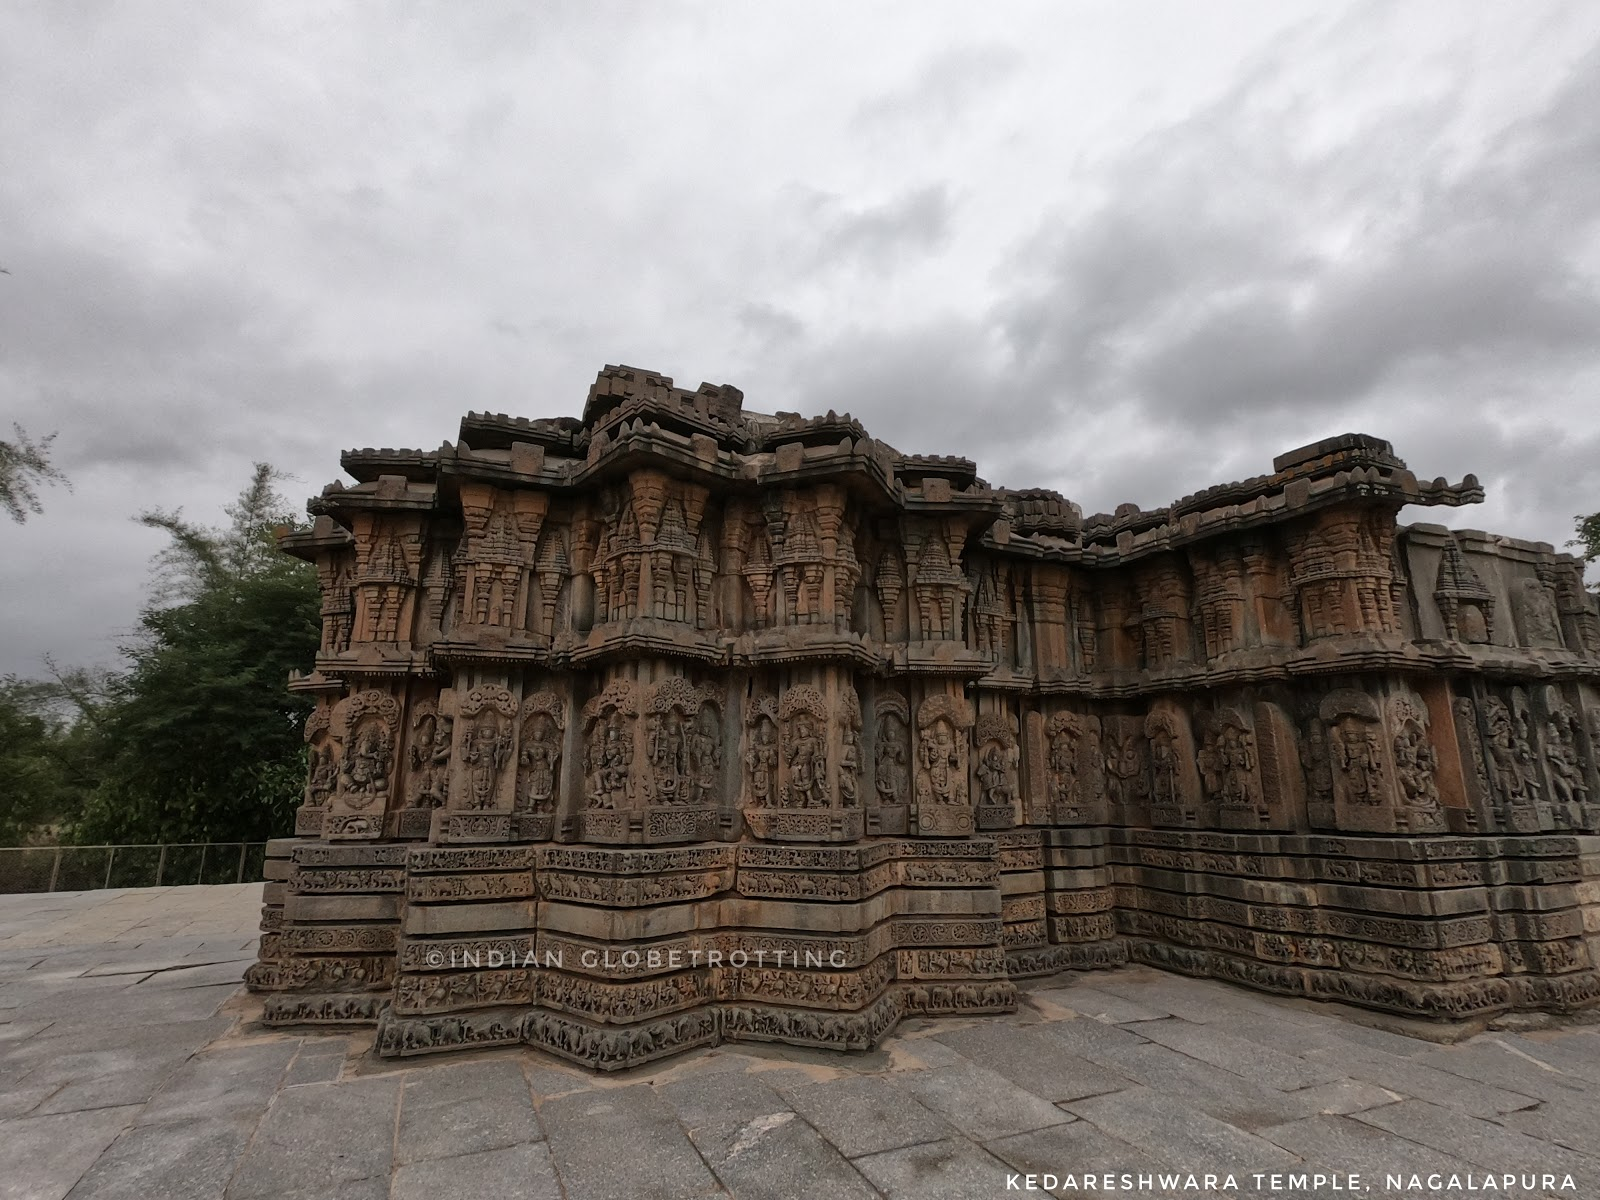 Kedareshwara Temple is a lesser known hoysala temple located in Nagalupra near to turuvekere